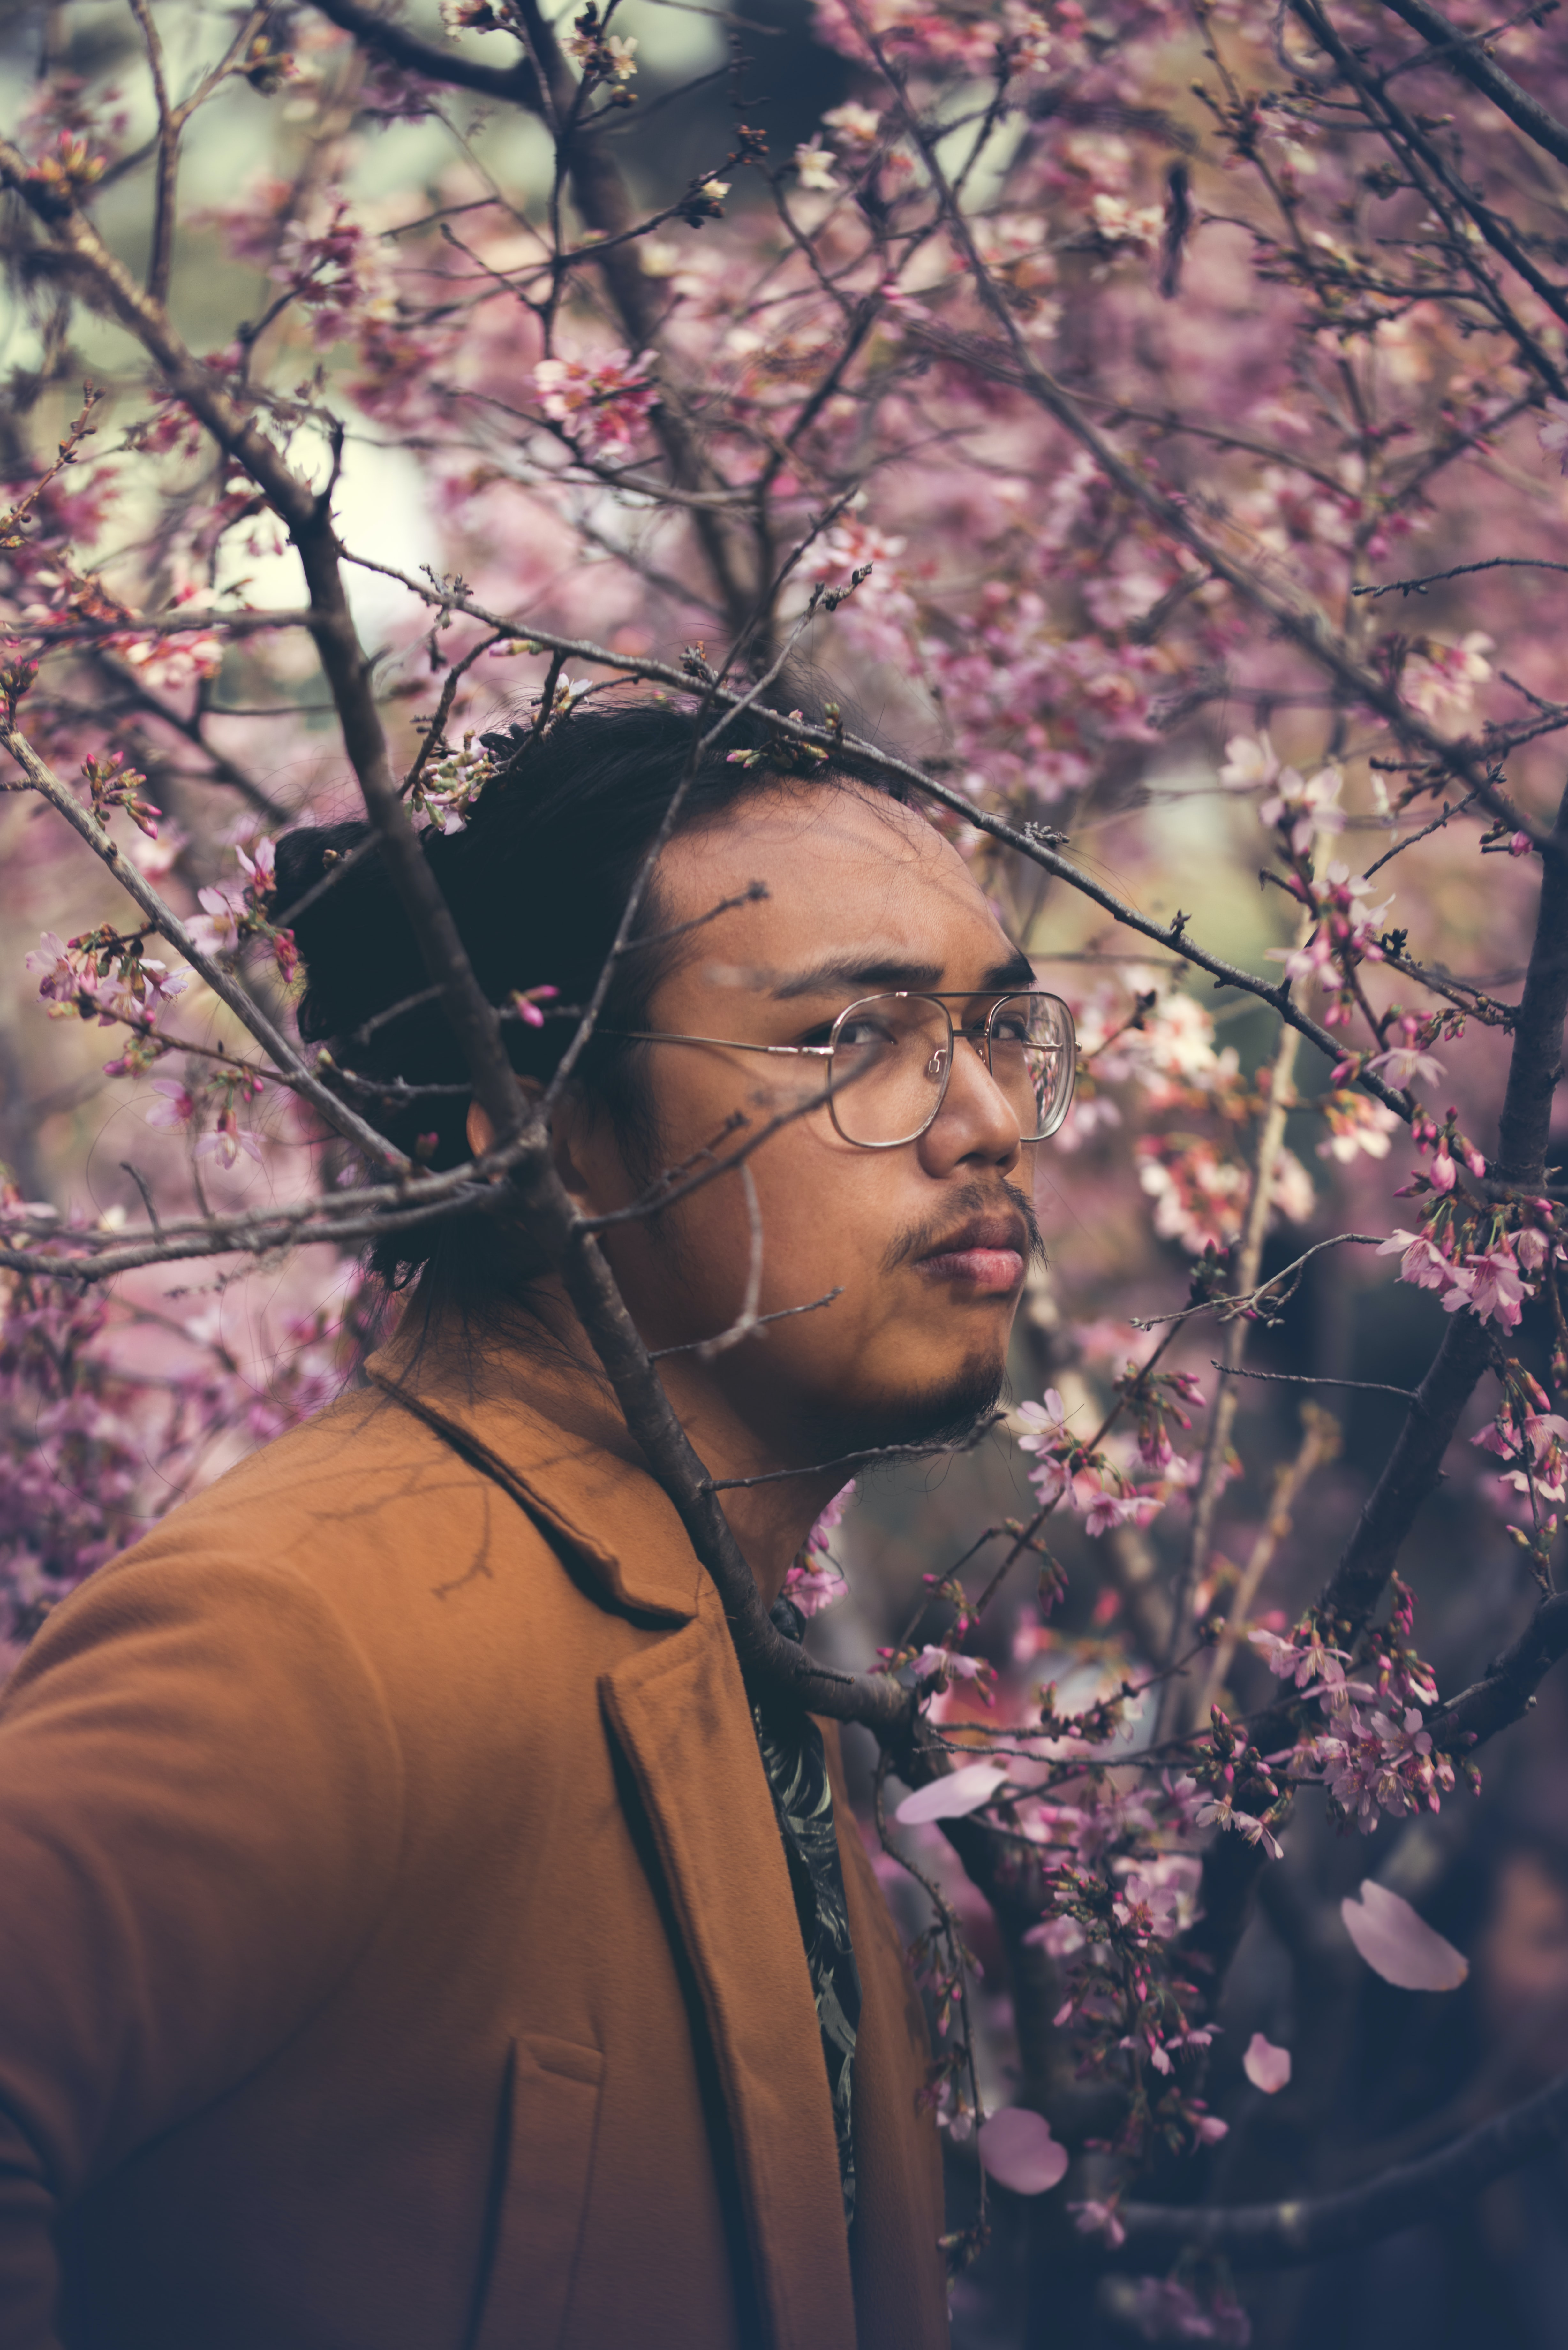 selective focus photography of man near cherry blossom